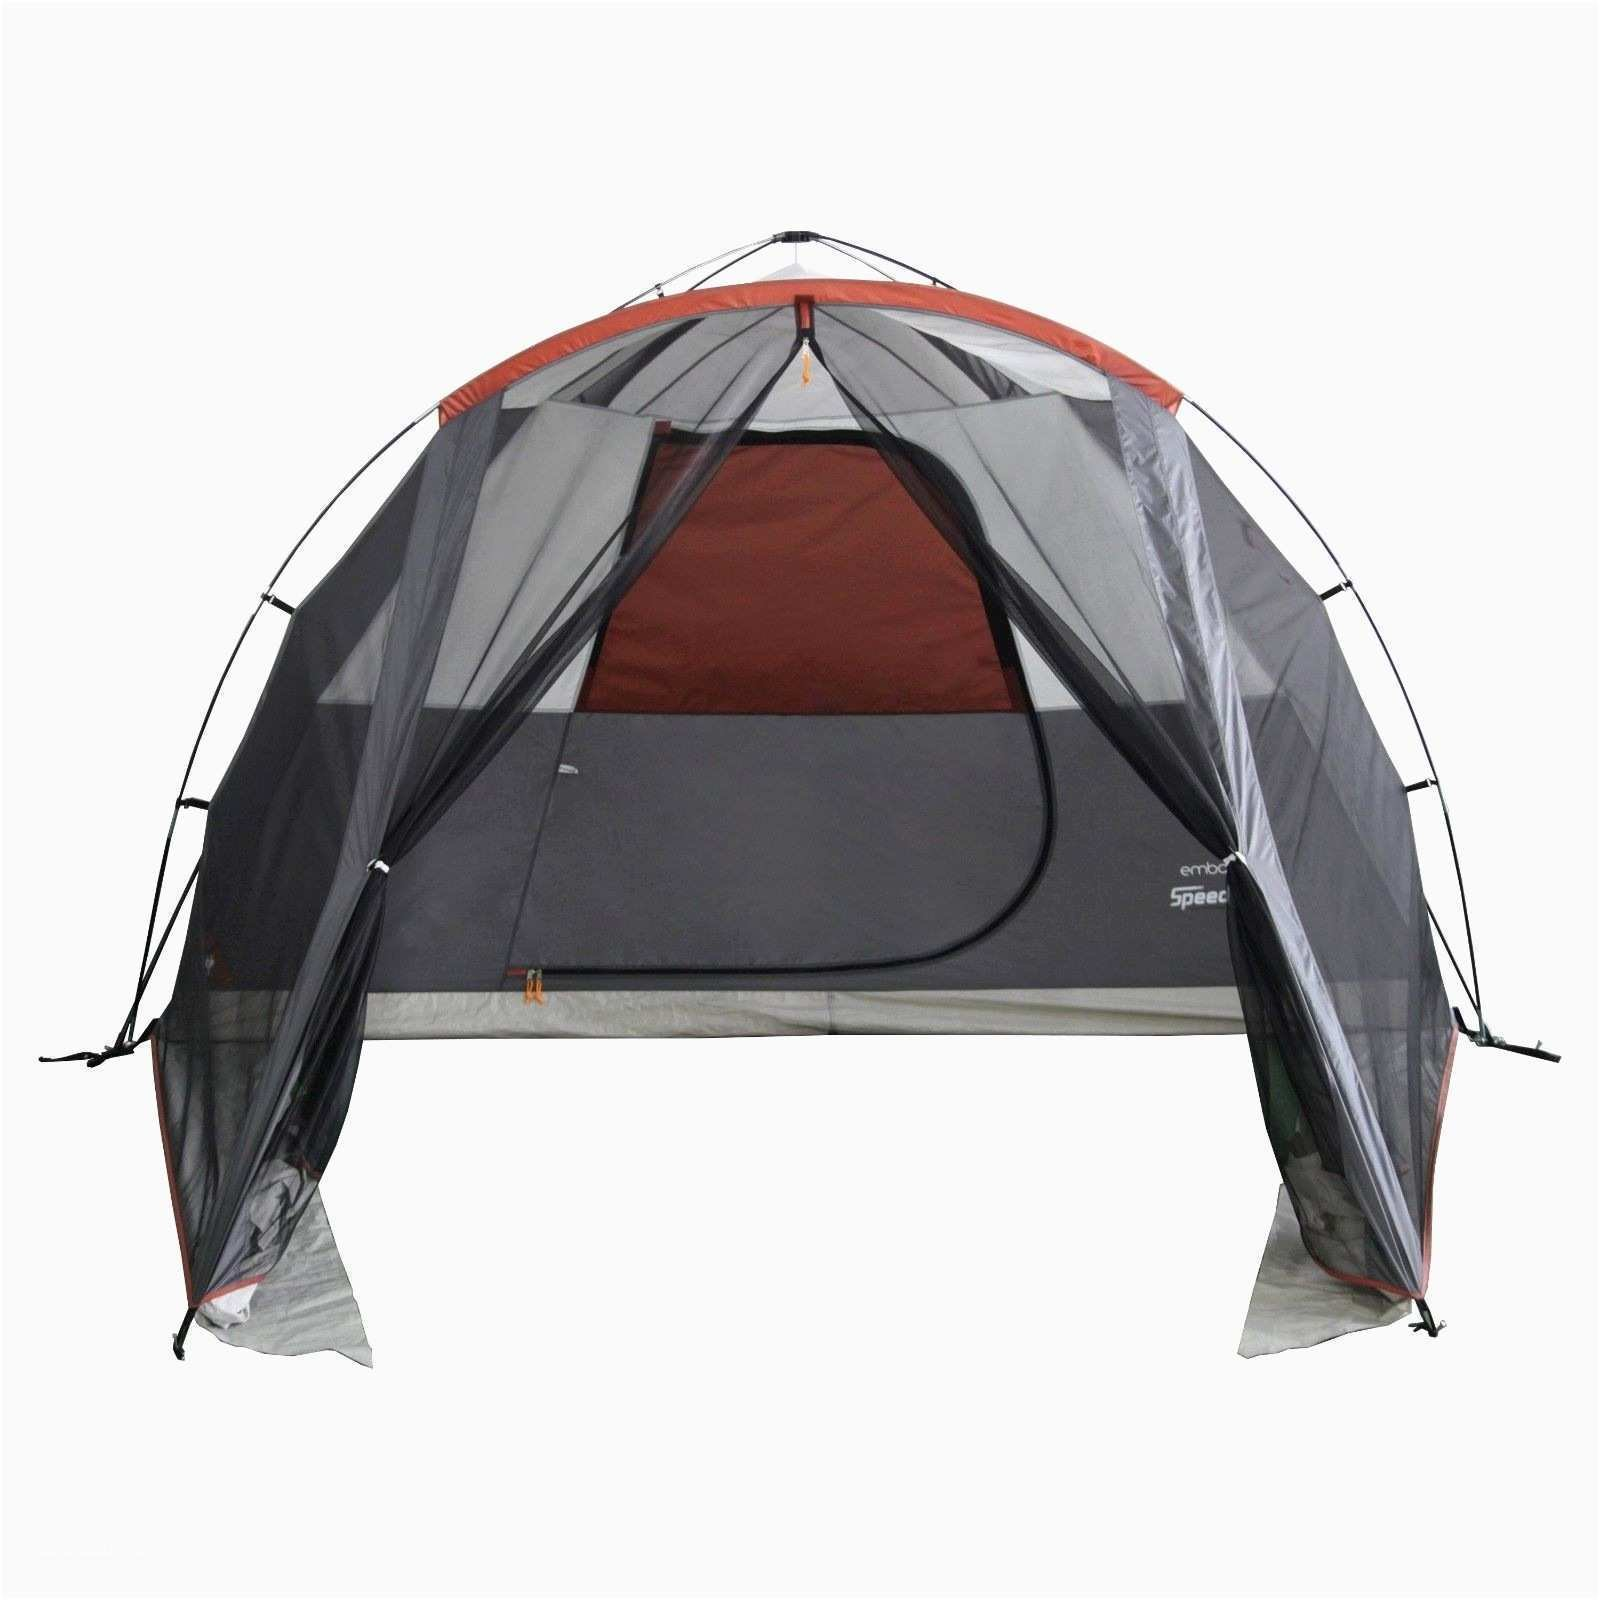 Best 22 Stocks Of 3 Room Family Cabin Tent With Screened Porch With Pictures